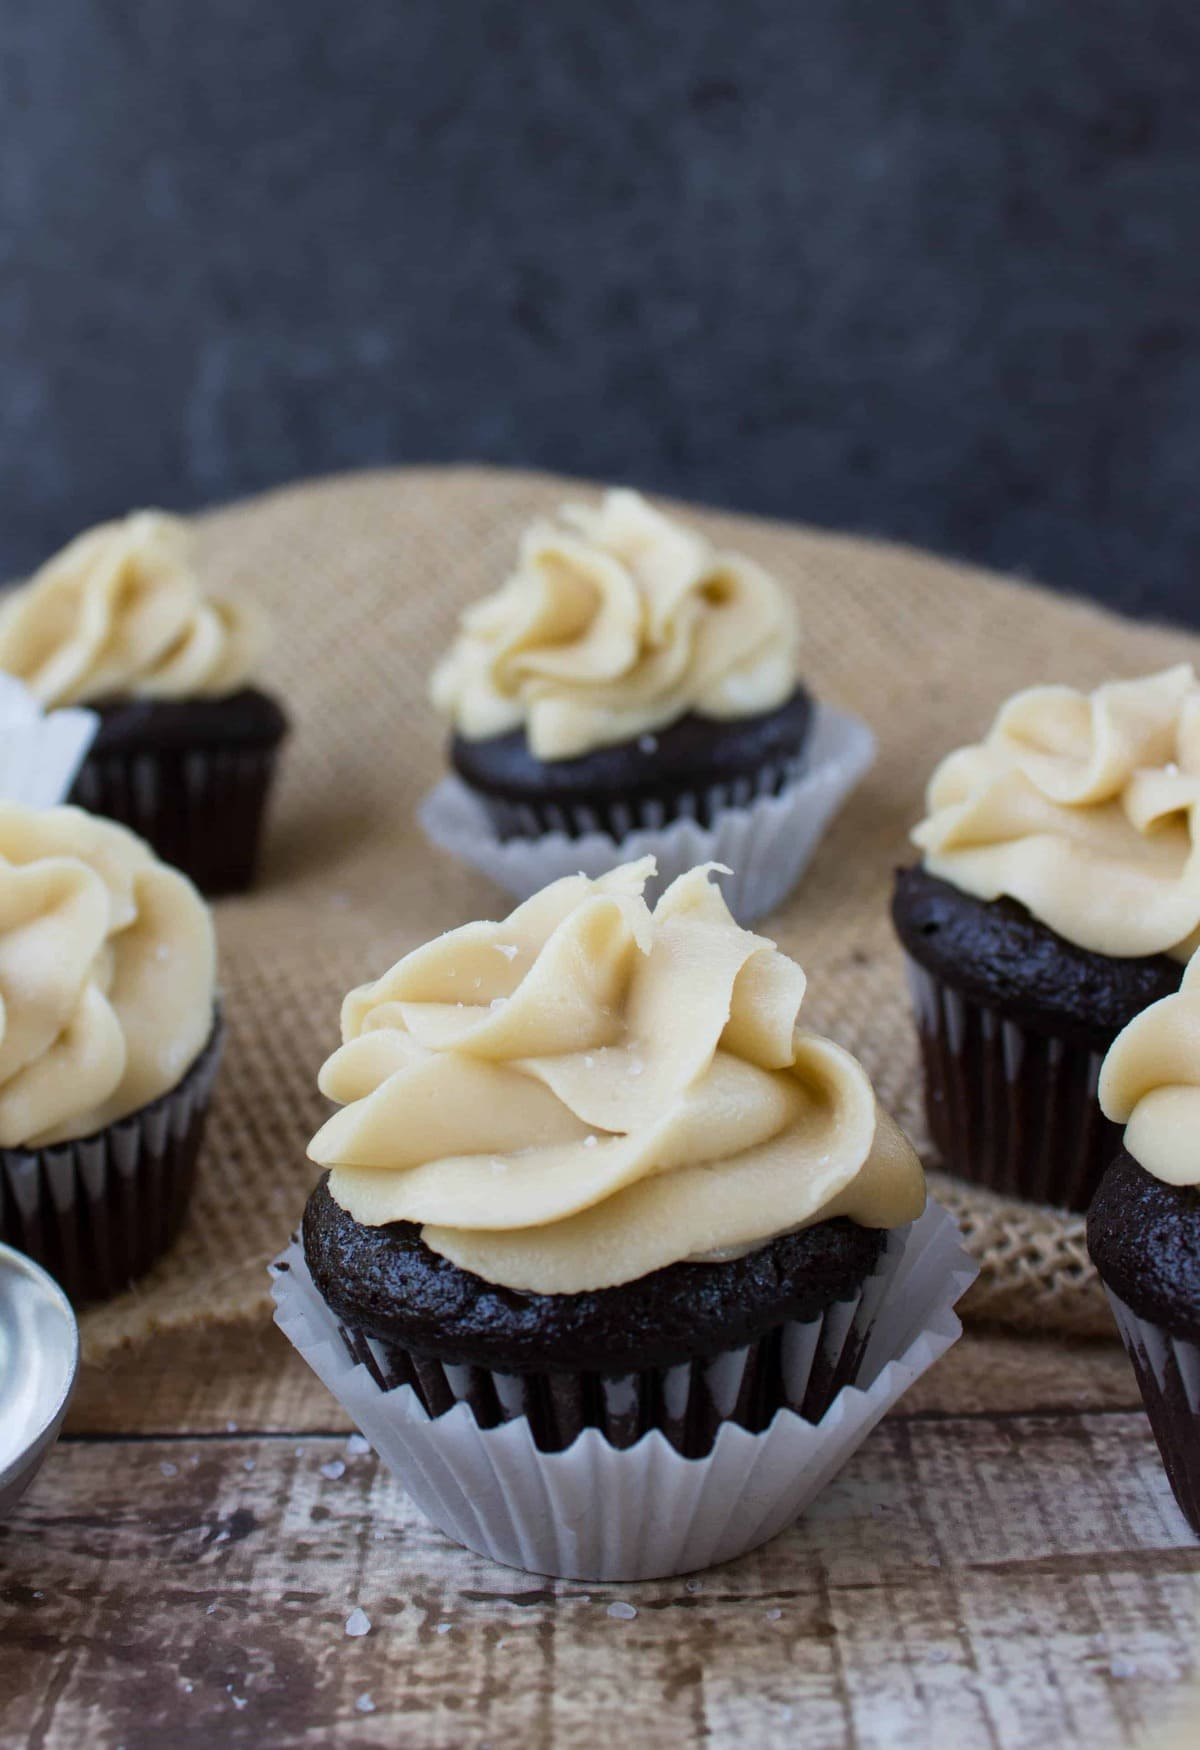 Dark Chocolate Mini Cupcakes With Salted Caramel Frosting